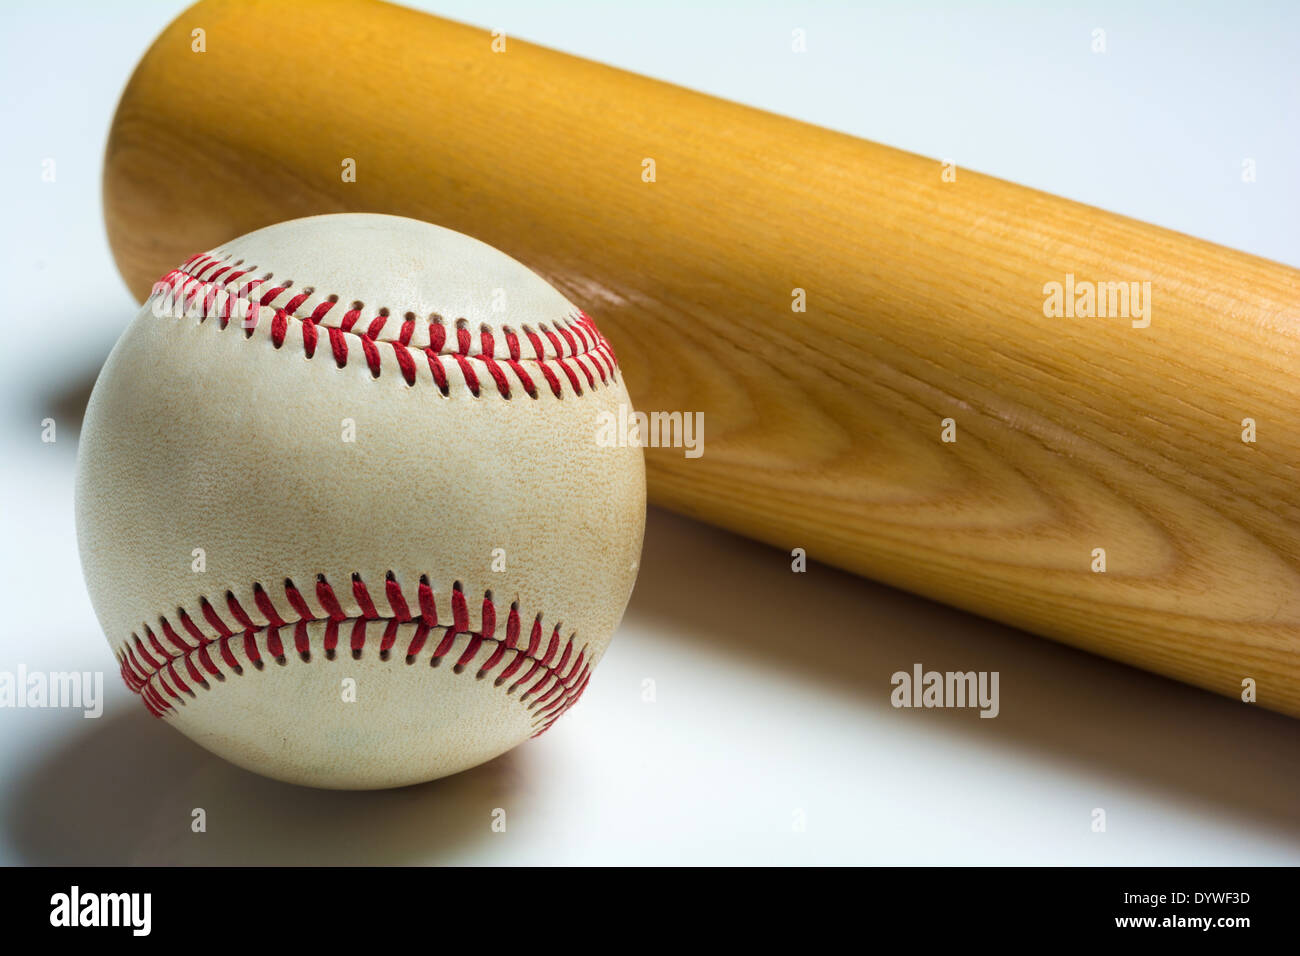 A wooden baseball bat and ball on a white background - Stock Image